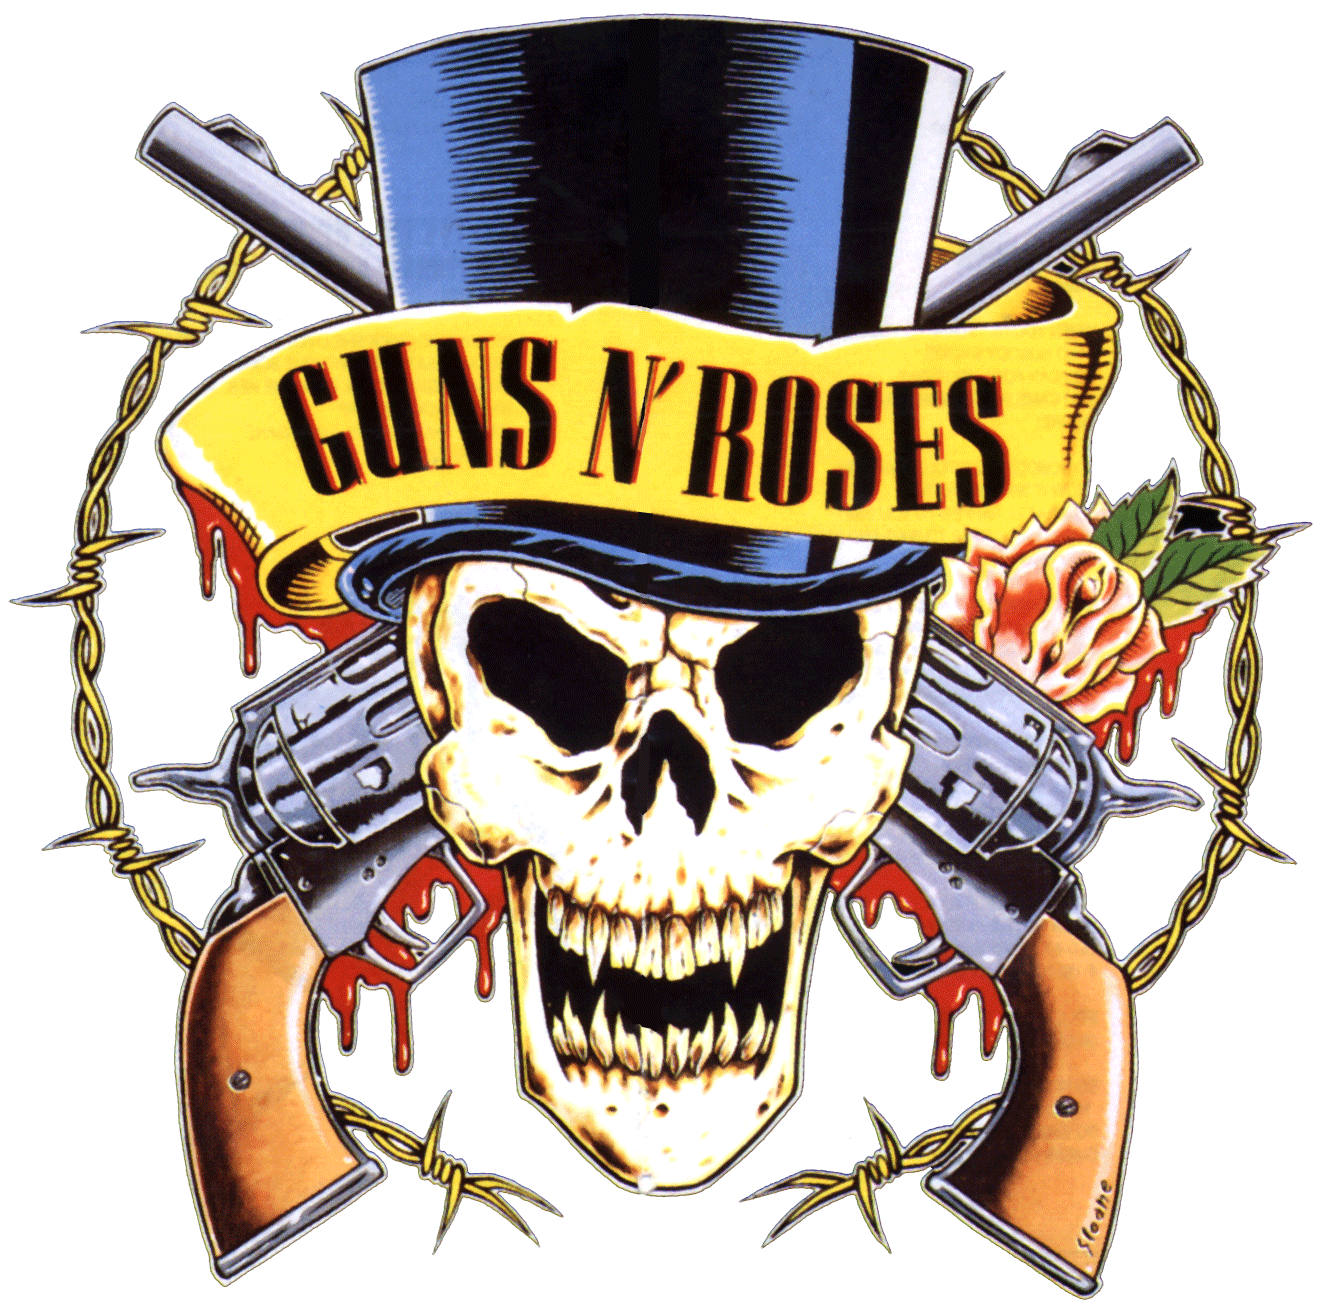 Guns and roses clipart graphic black and white Guns N\' Roses Logo transparent PNG - StickPNG graphic black and white